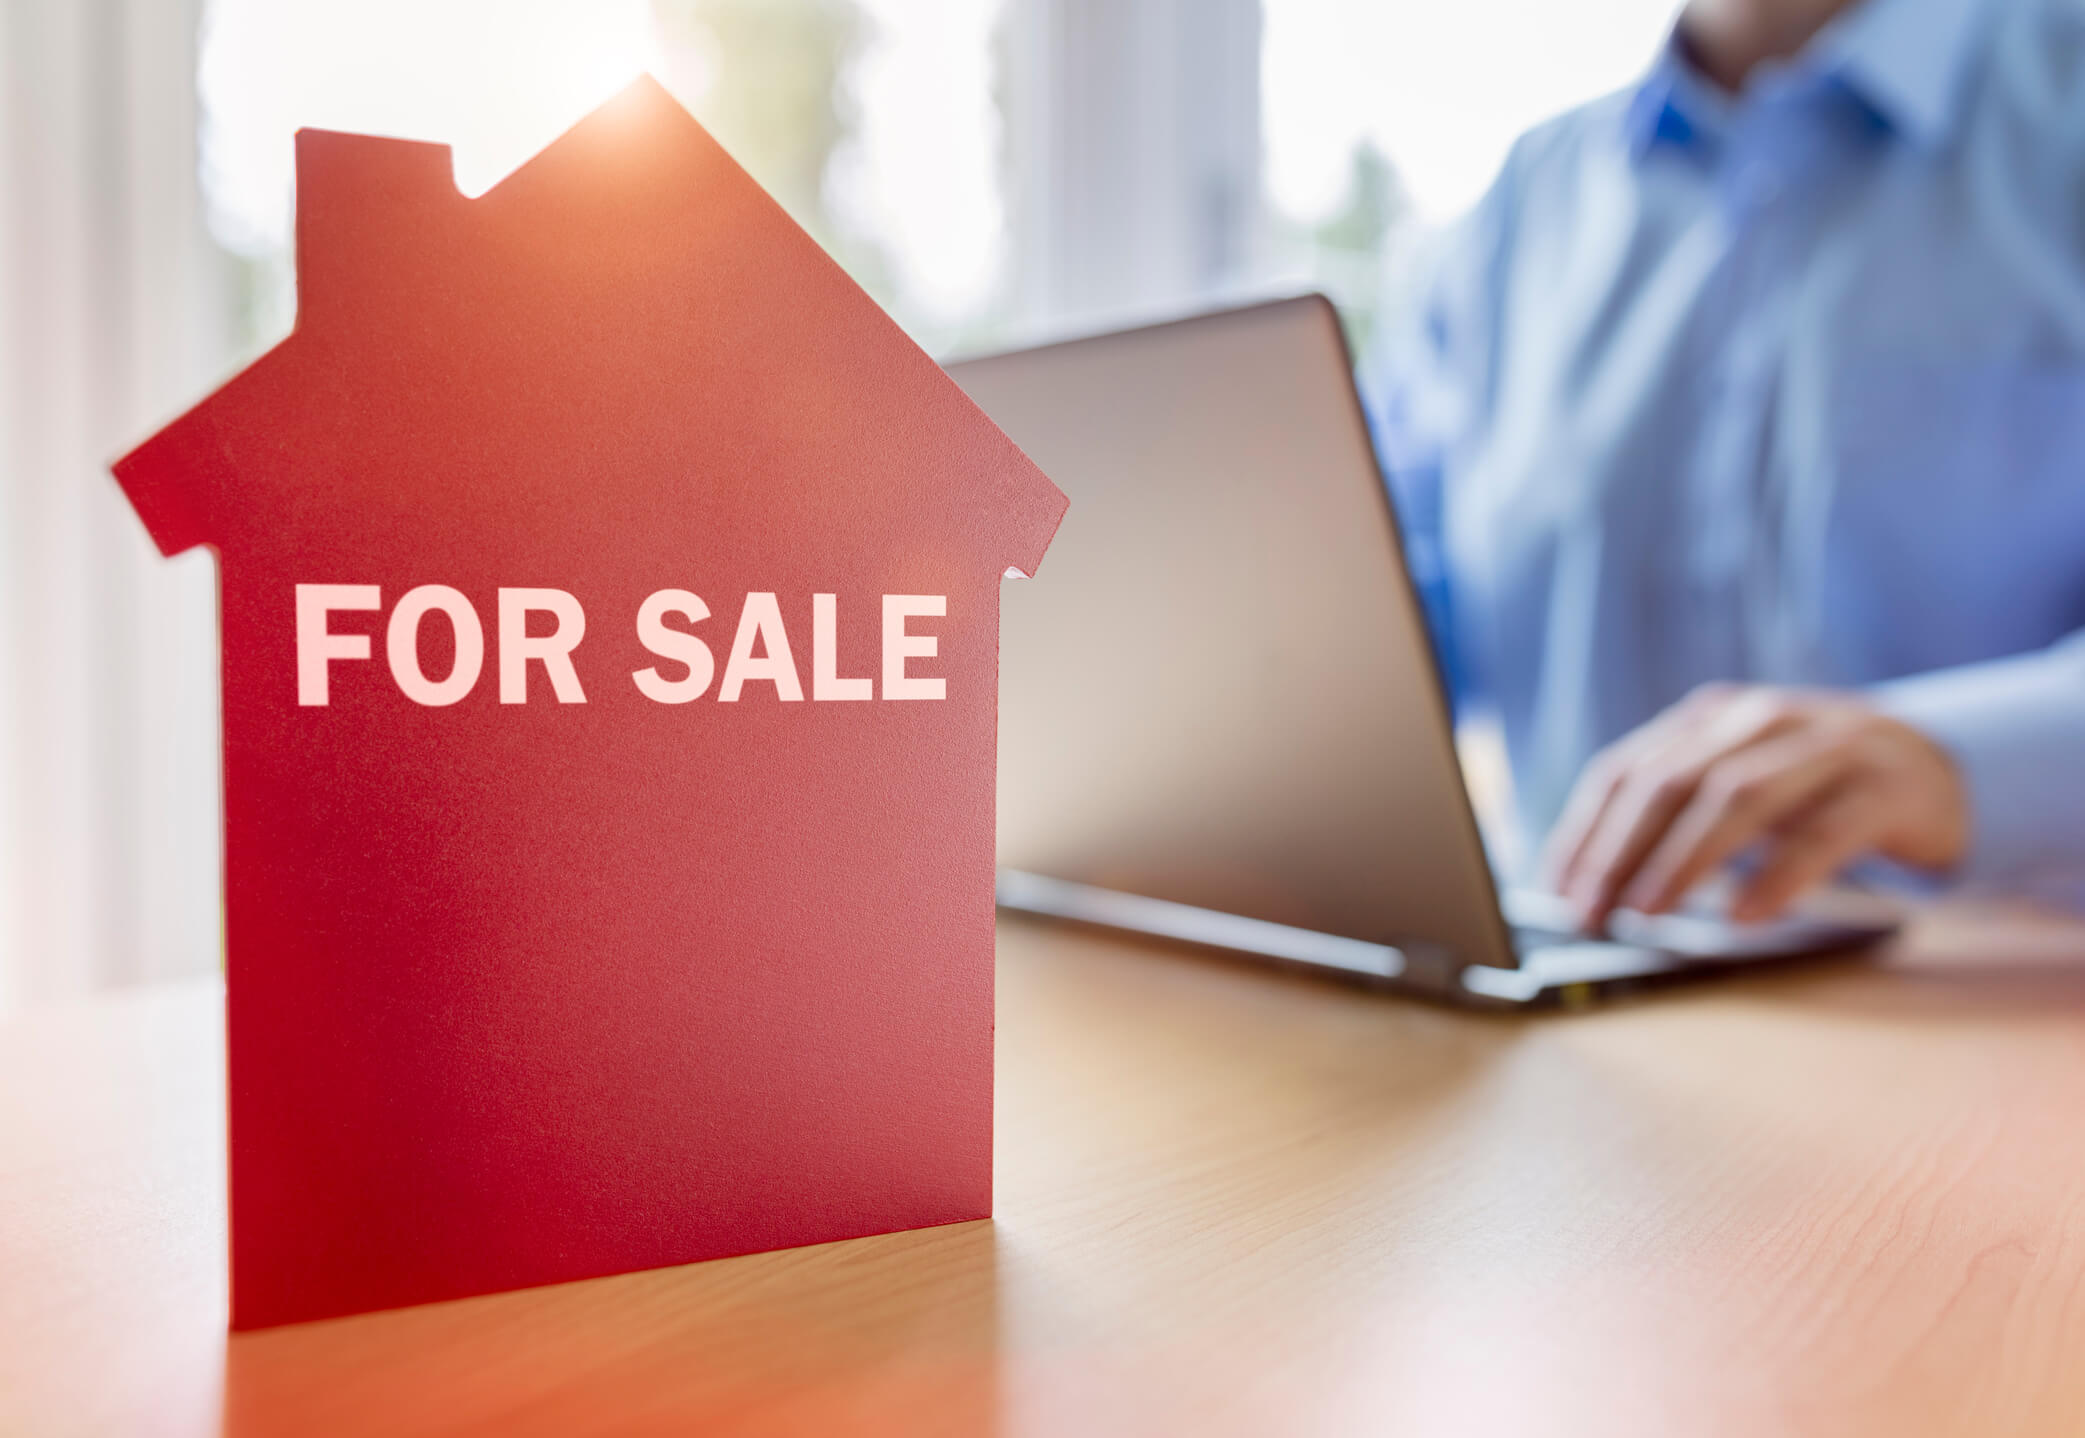 Types of sale